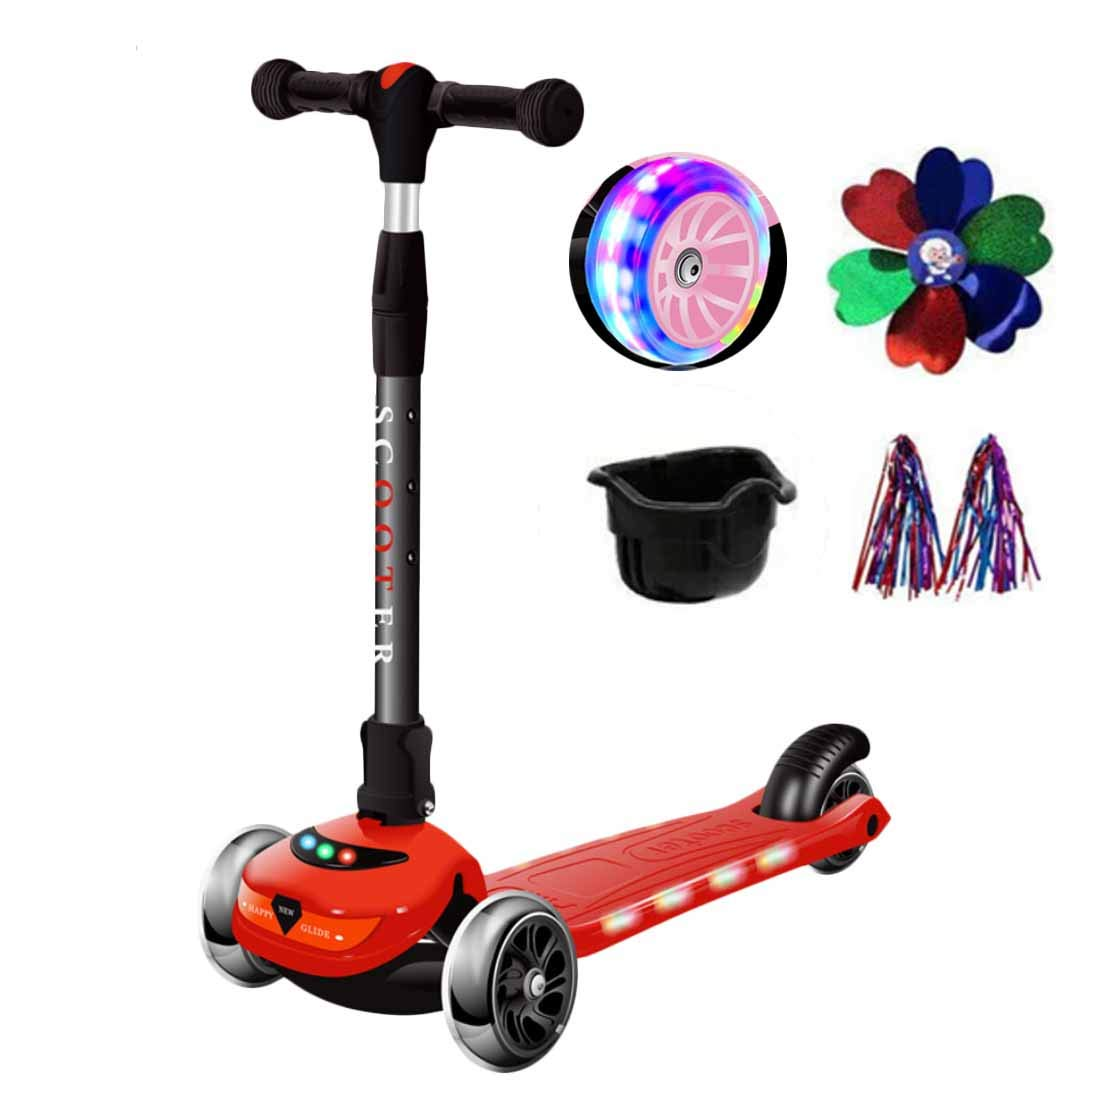 MYMGG Kick Scooter Adjustable Height Foldable Scooters Best Gift for Age 3 up Kids Girls Boys Teens,Red2